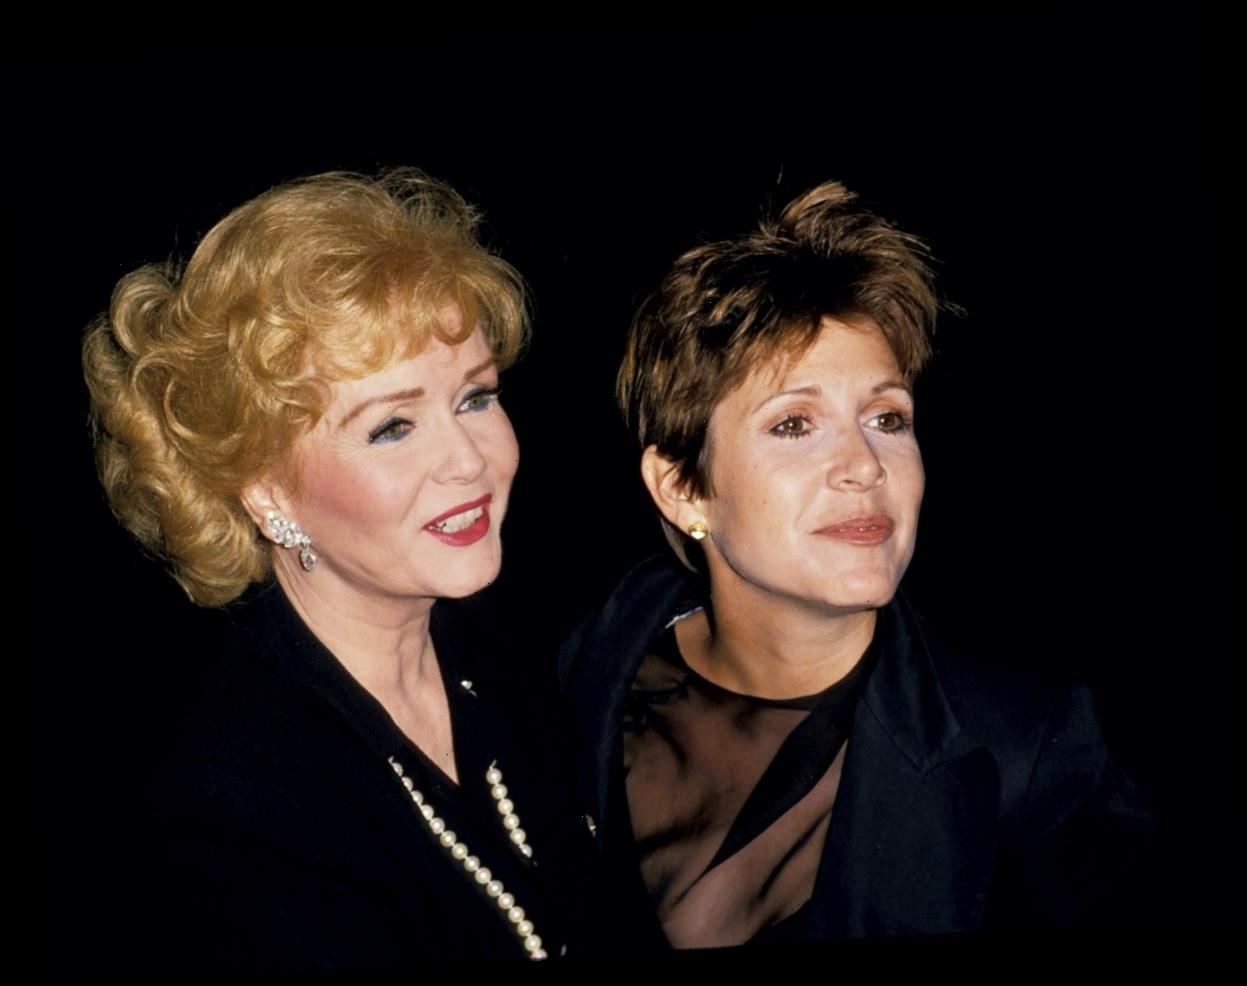 Carrie Fisher Once Explained What She Admired Most About Her Mother, Debbie Reynolds